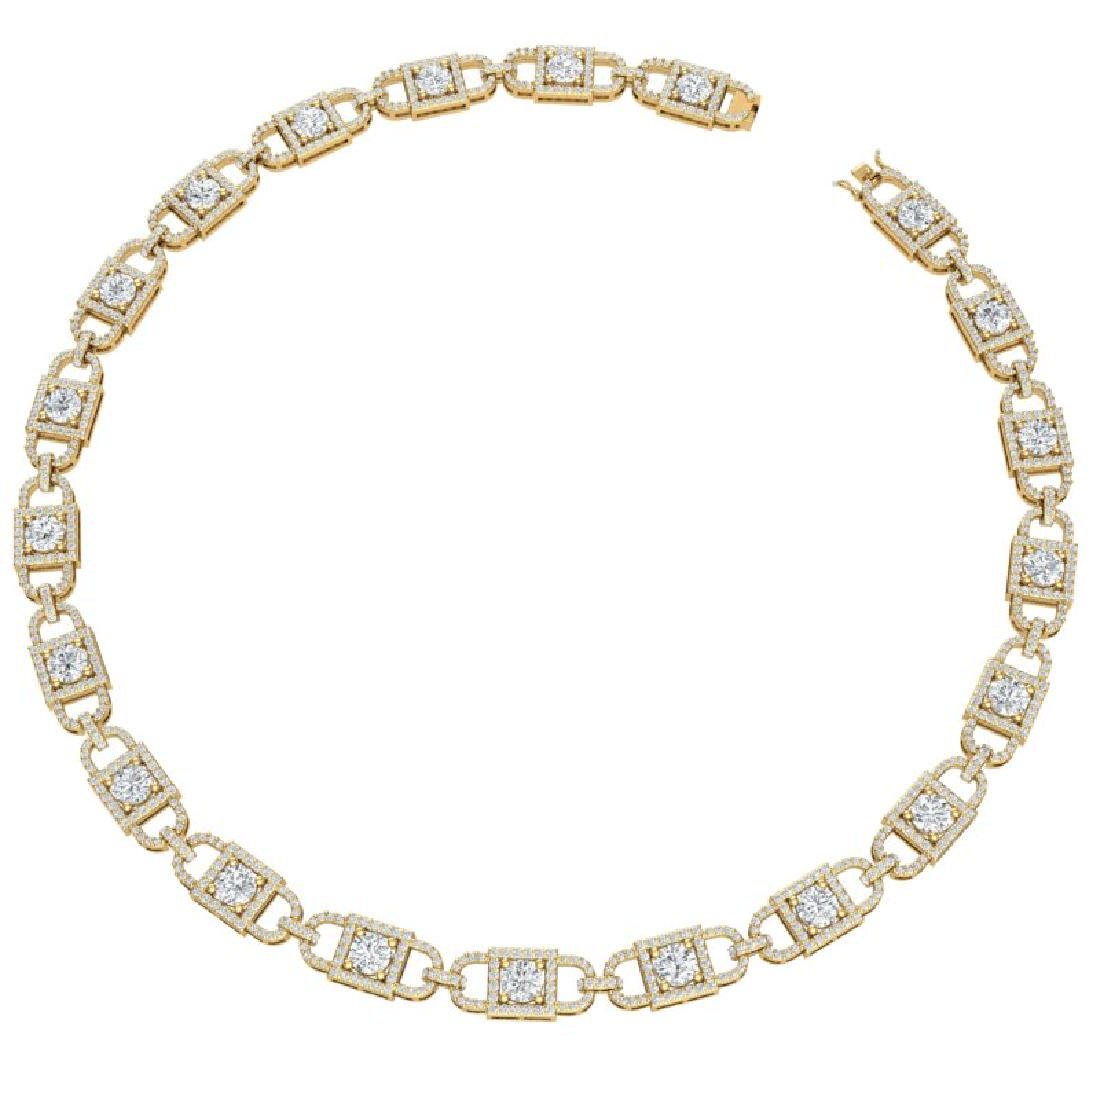 20 CTW Certified SI/I Diamond Halo Necklace 18K Yellow - 3